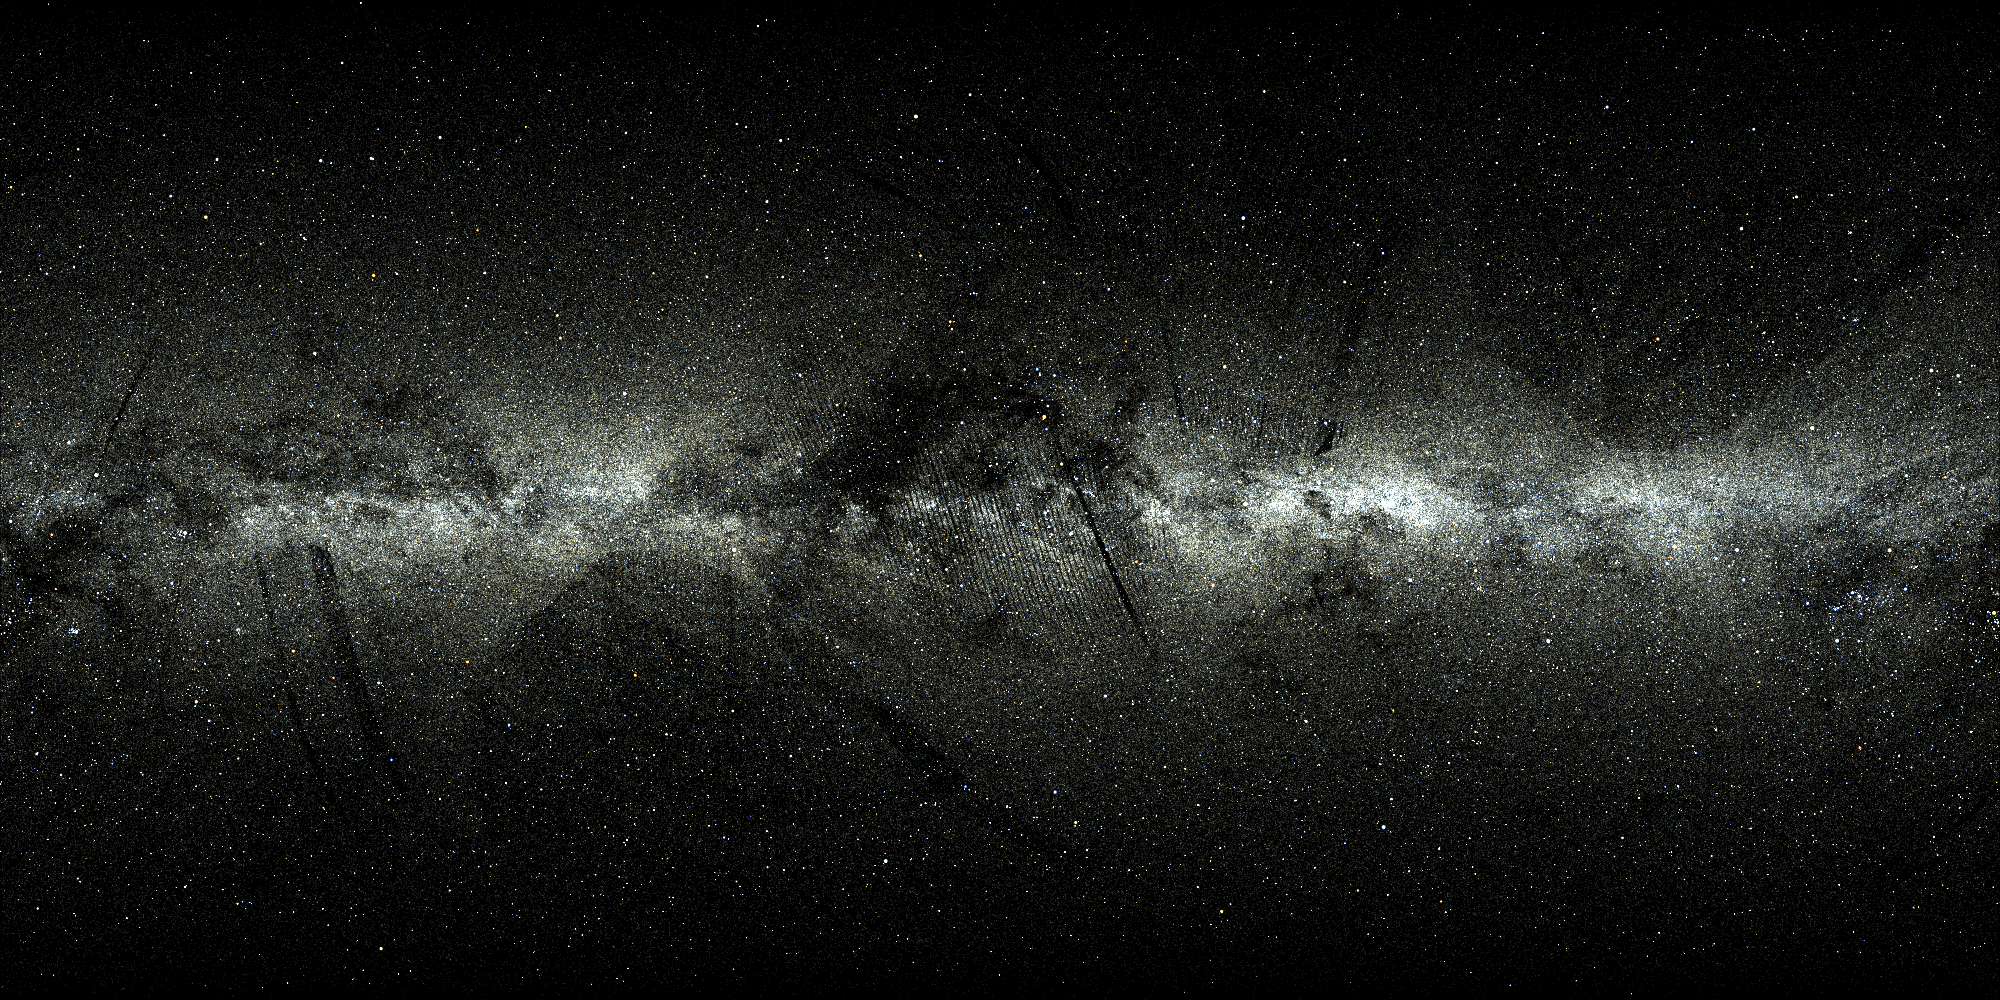 3d Galactic Wallpaper Space In Images 2017 04 Two Million Stars In Our Galaxy